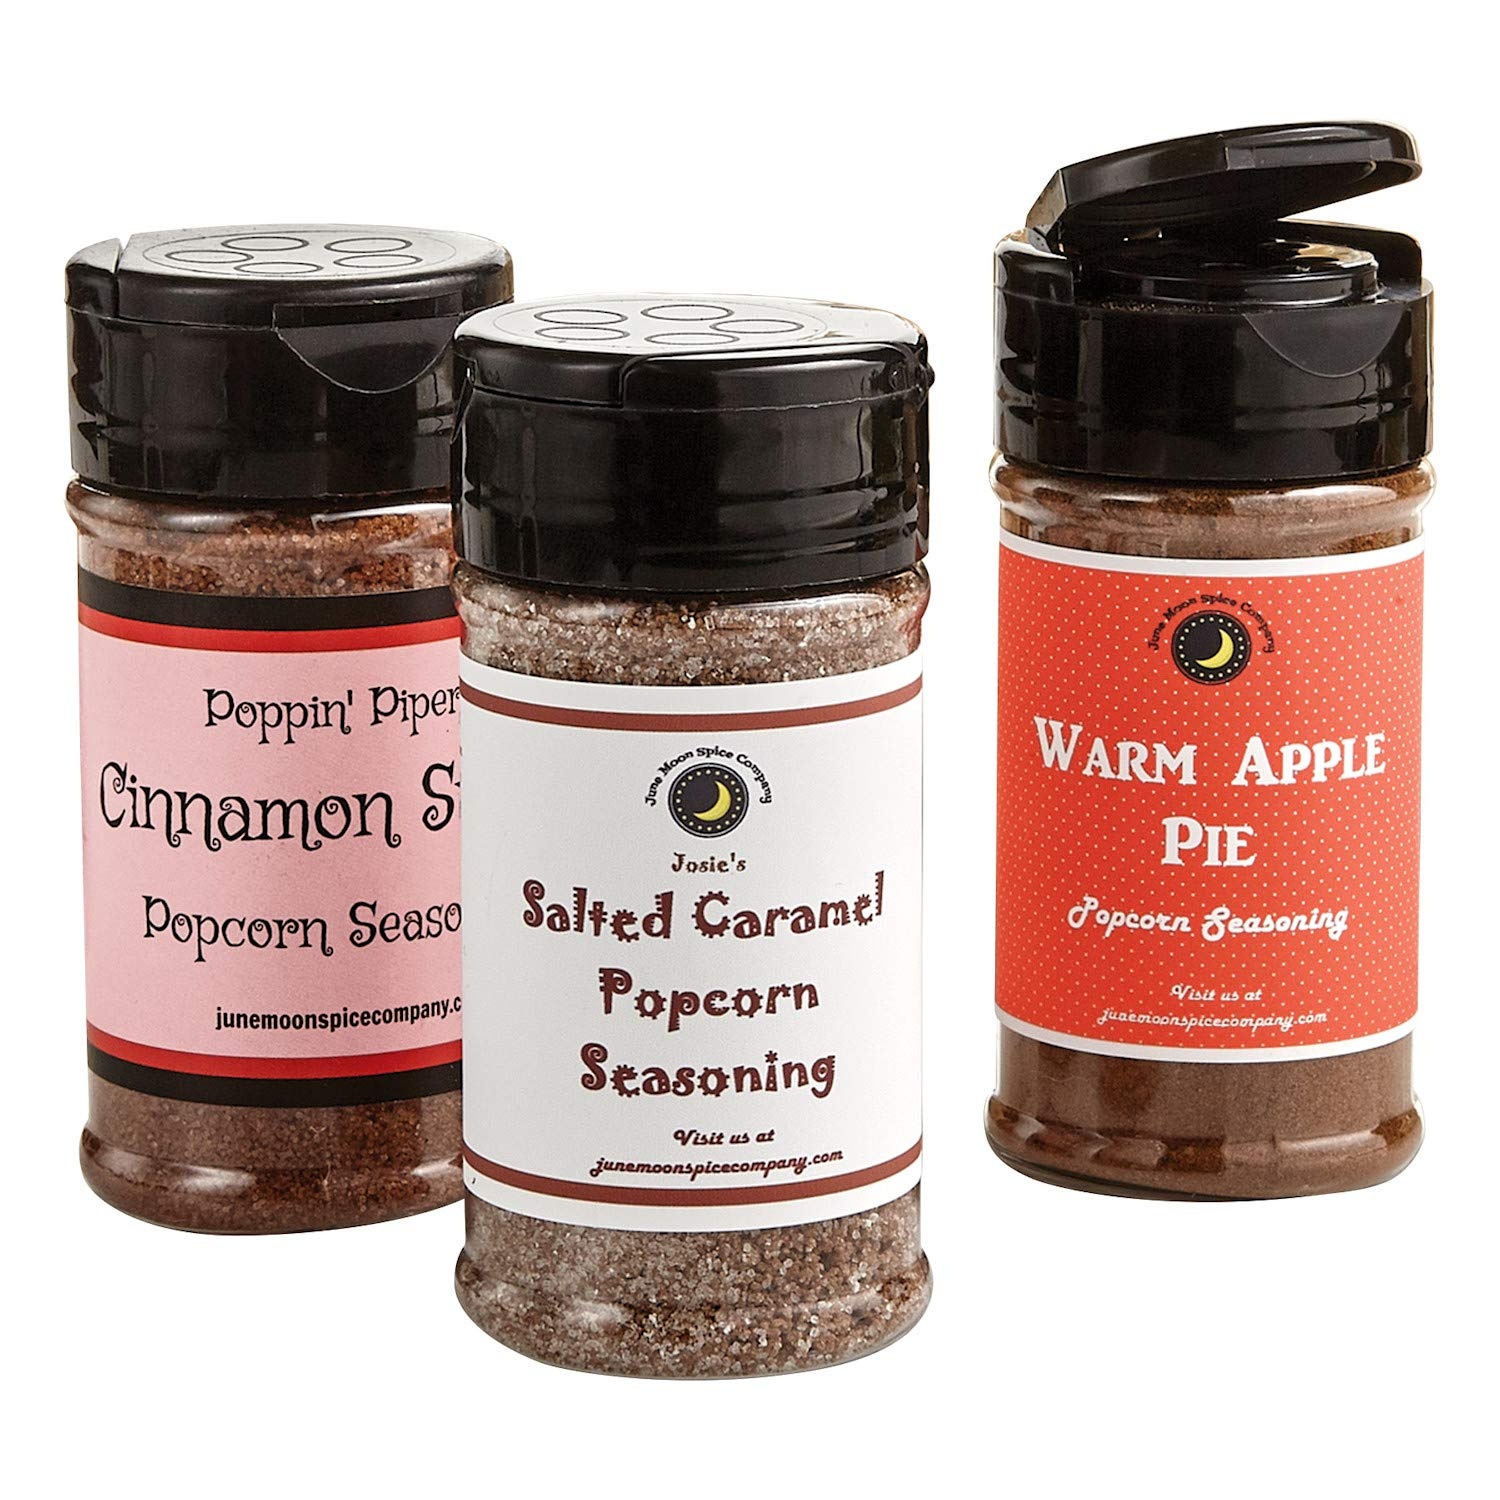 June Moon Spice Company Sweet Popcorn Seasoning Shaker Set - Cinnamon Sugar, Salted Caramel, Warm Apple Pie Flavors - 3.5 Ounces Each by JUNE MOON SPICE COMPANY